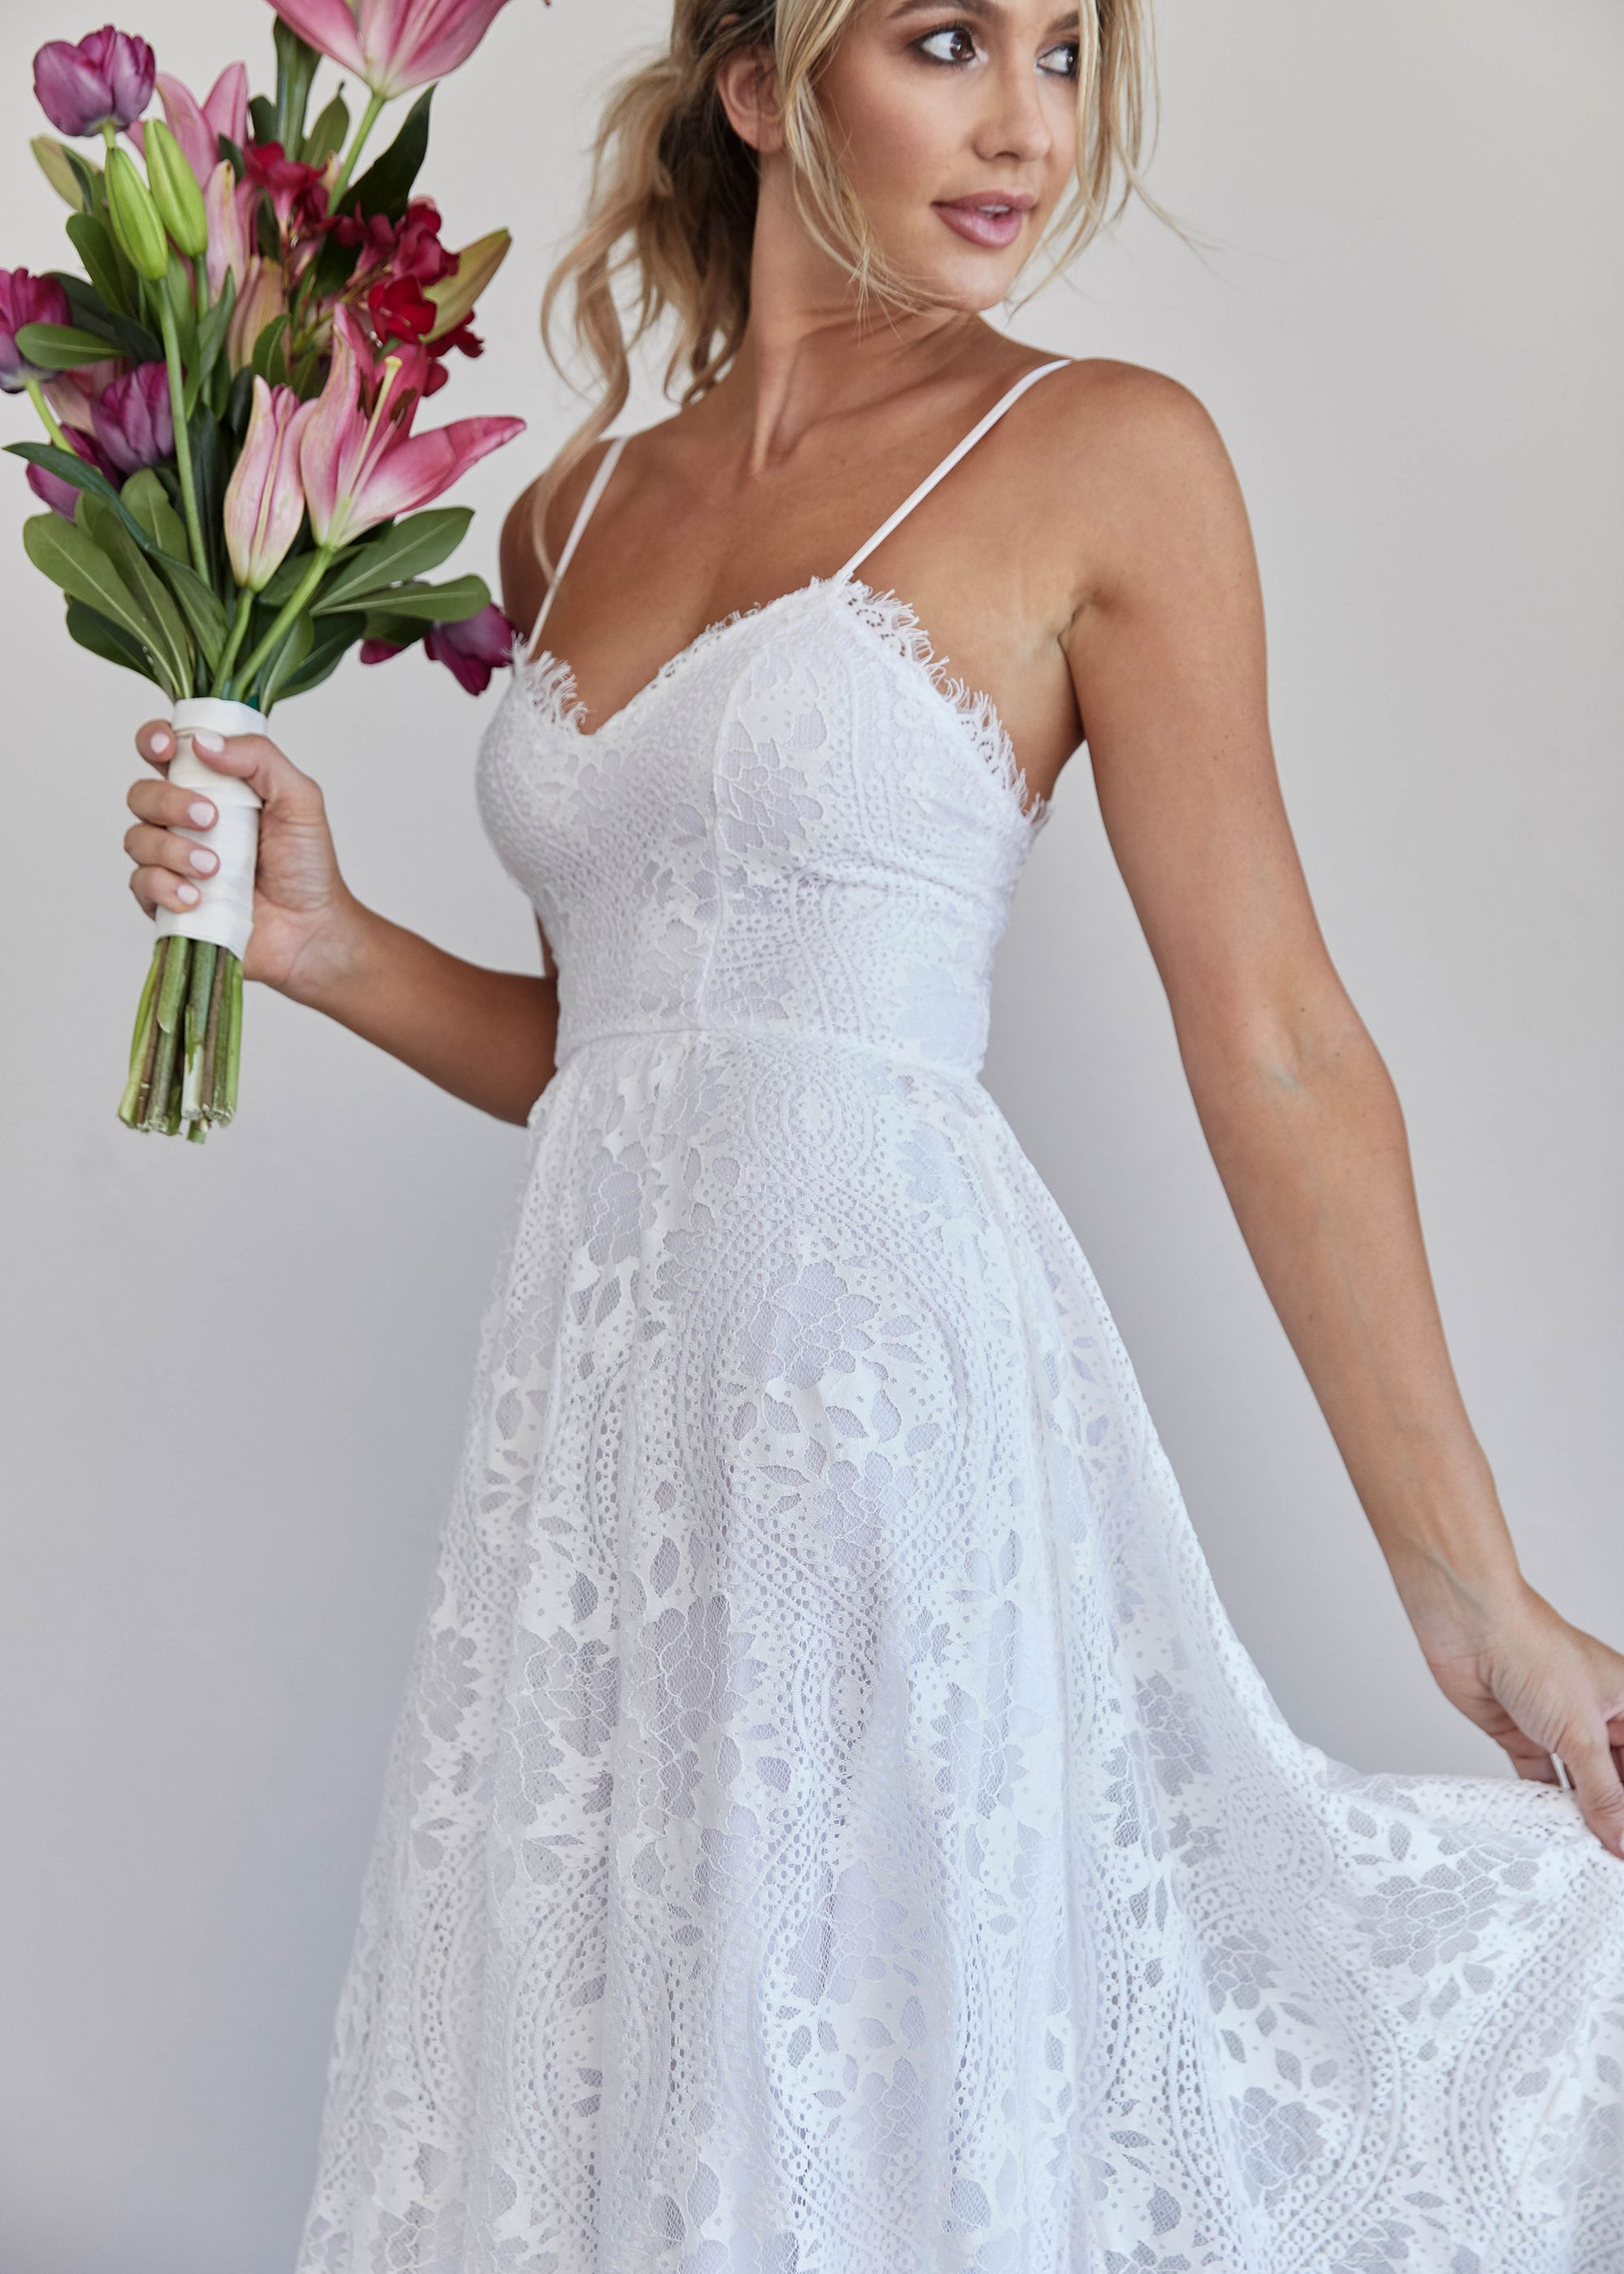 The Odette Dress with white lining.   Bohemian wedding